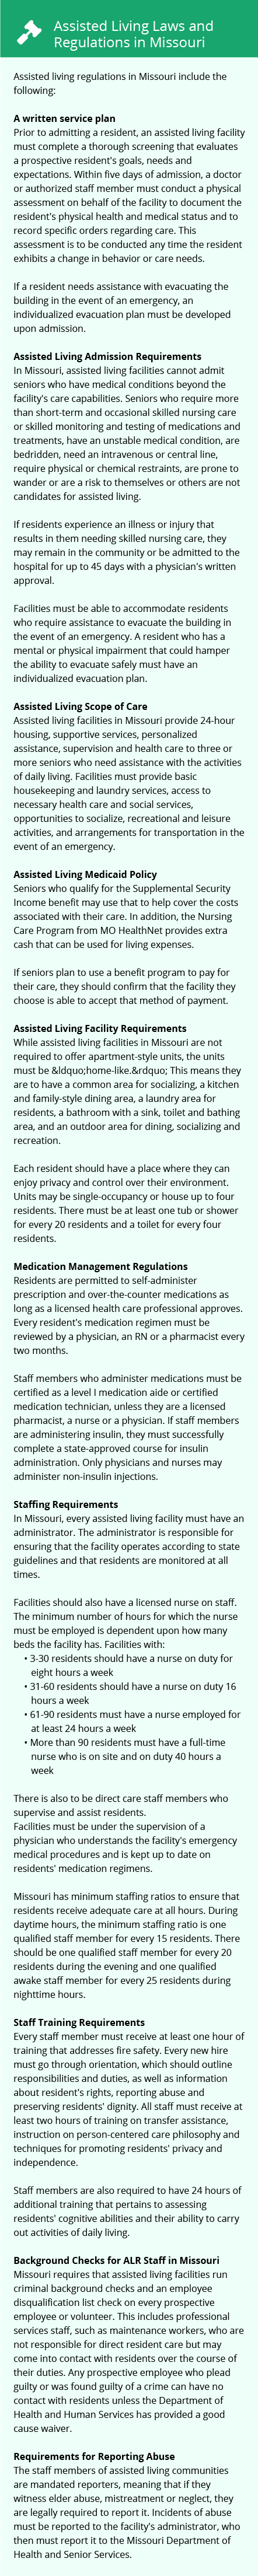 Laws and Regulations in Missouri